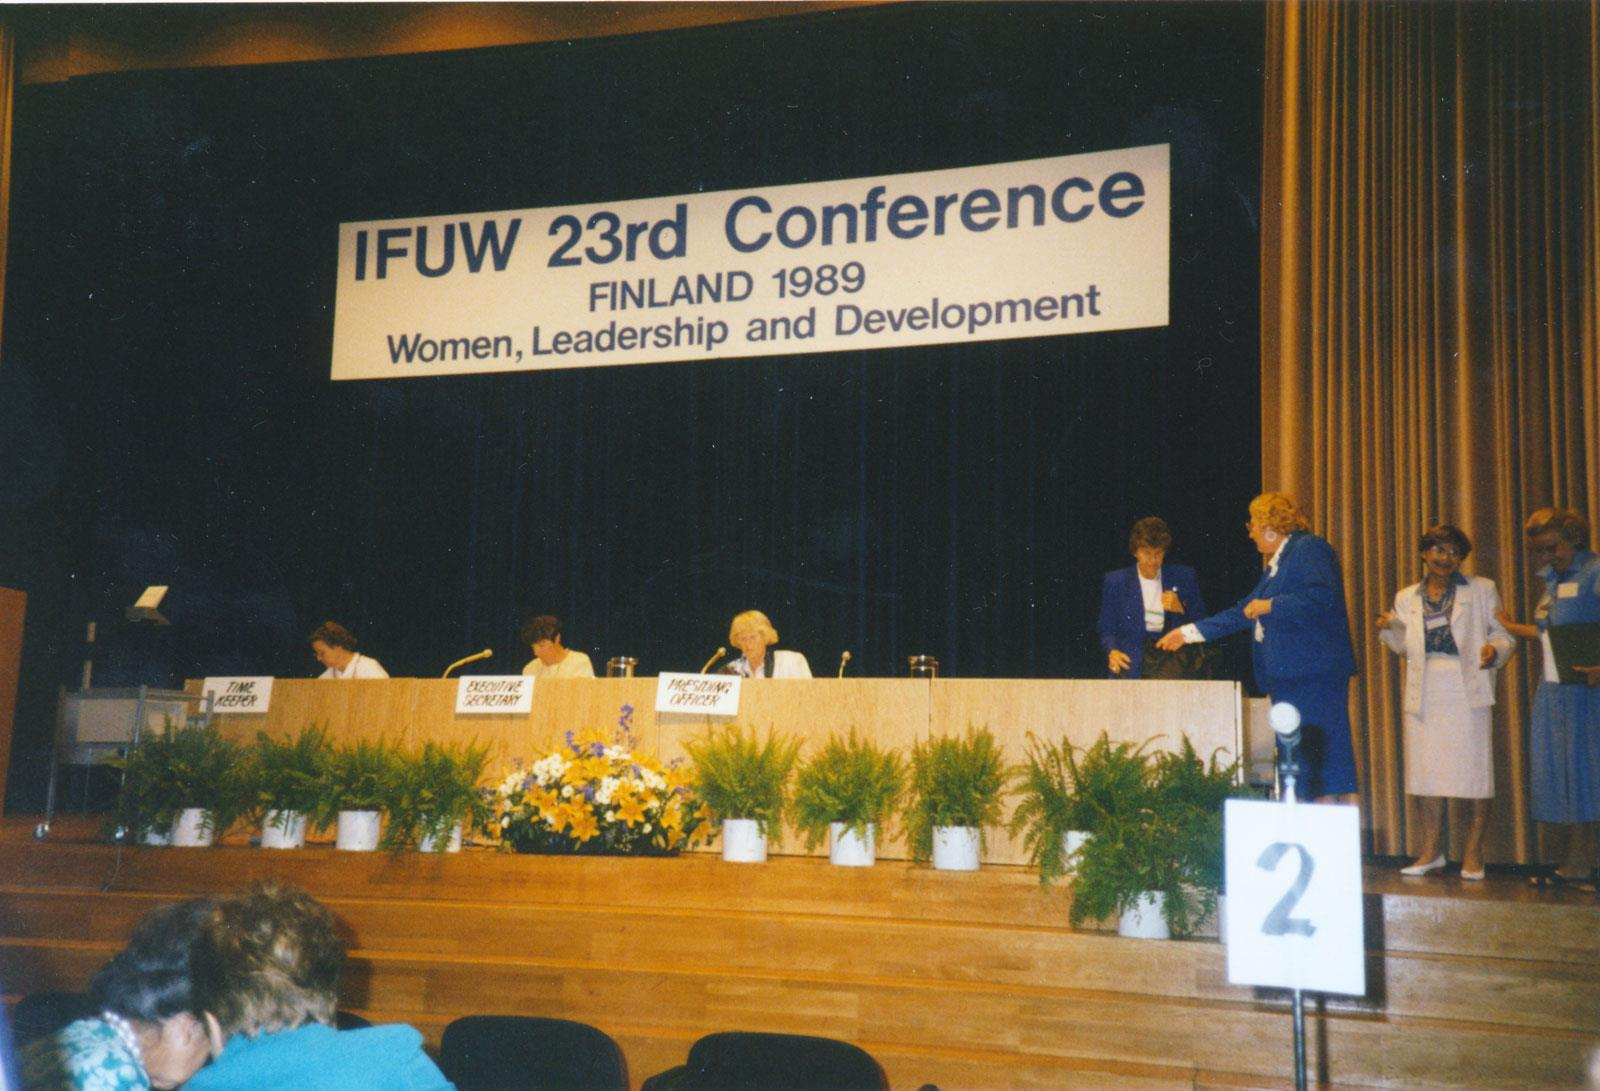 International Federation of University Women